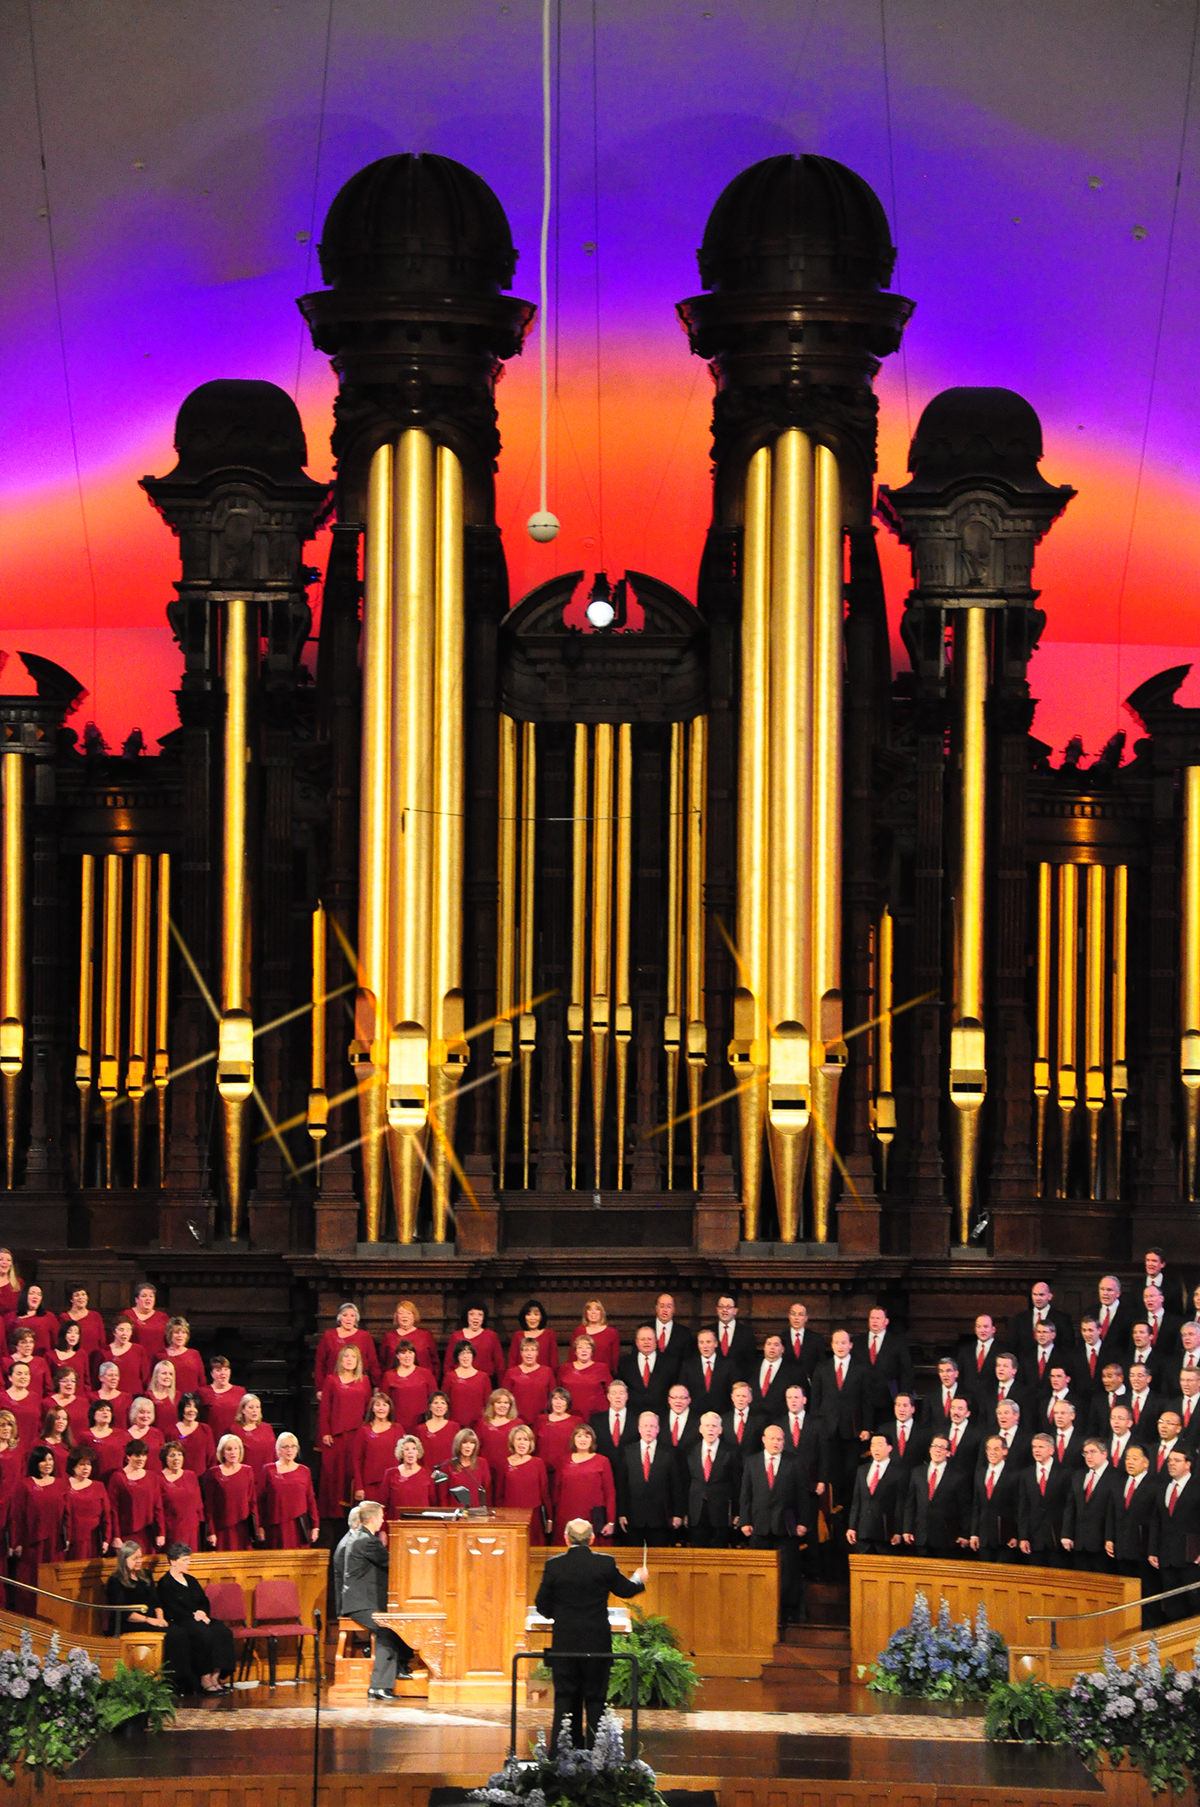 Performance with Mormon Tabernacle Choir